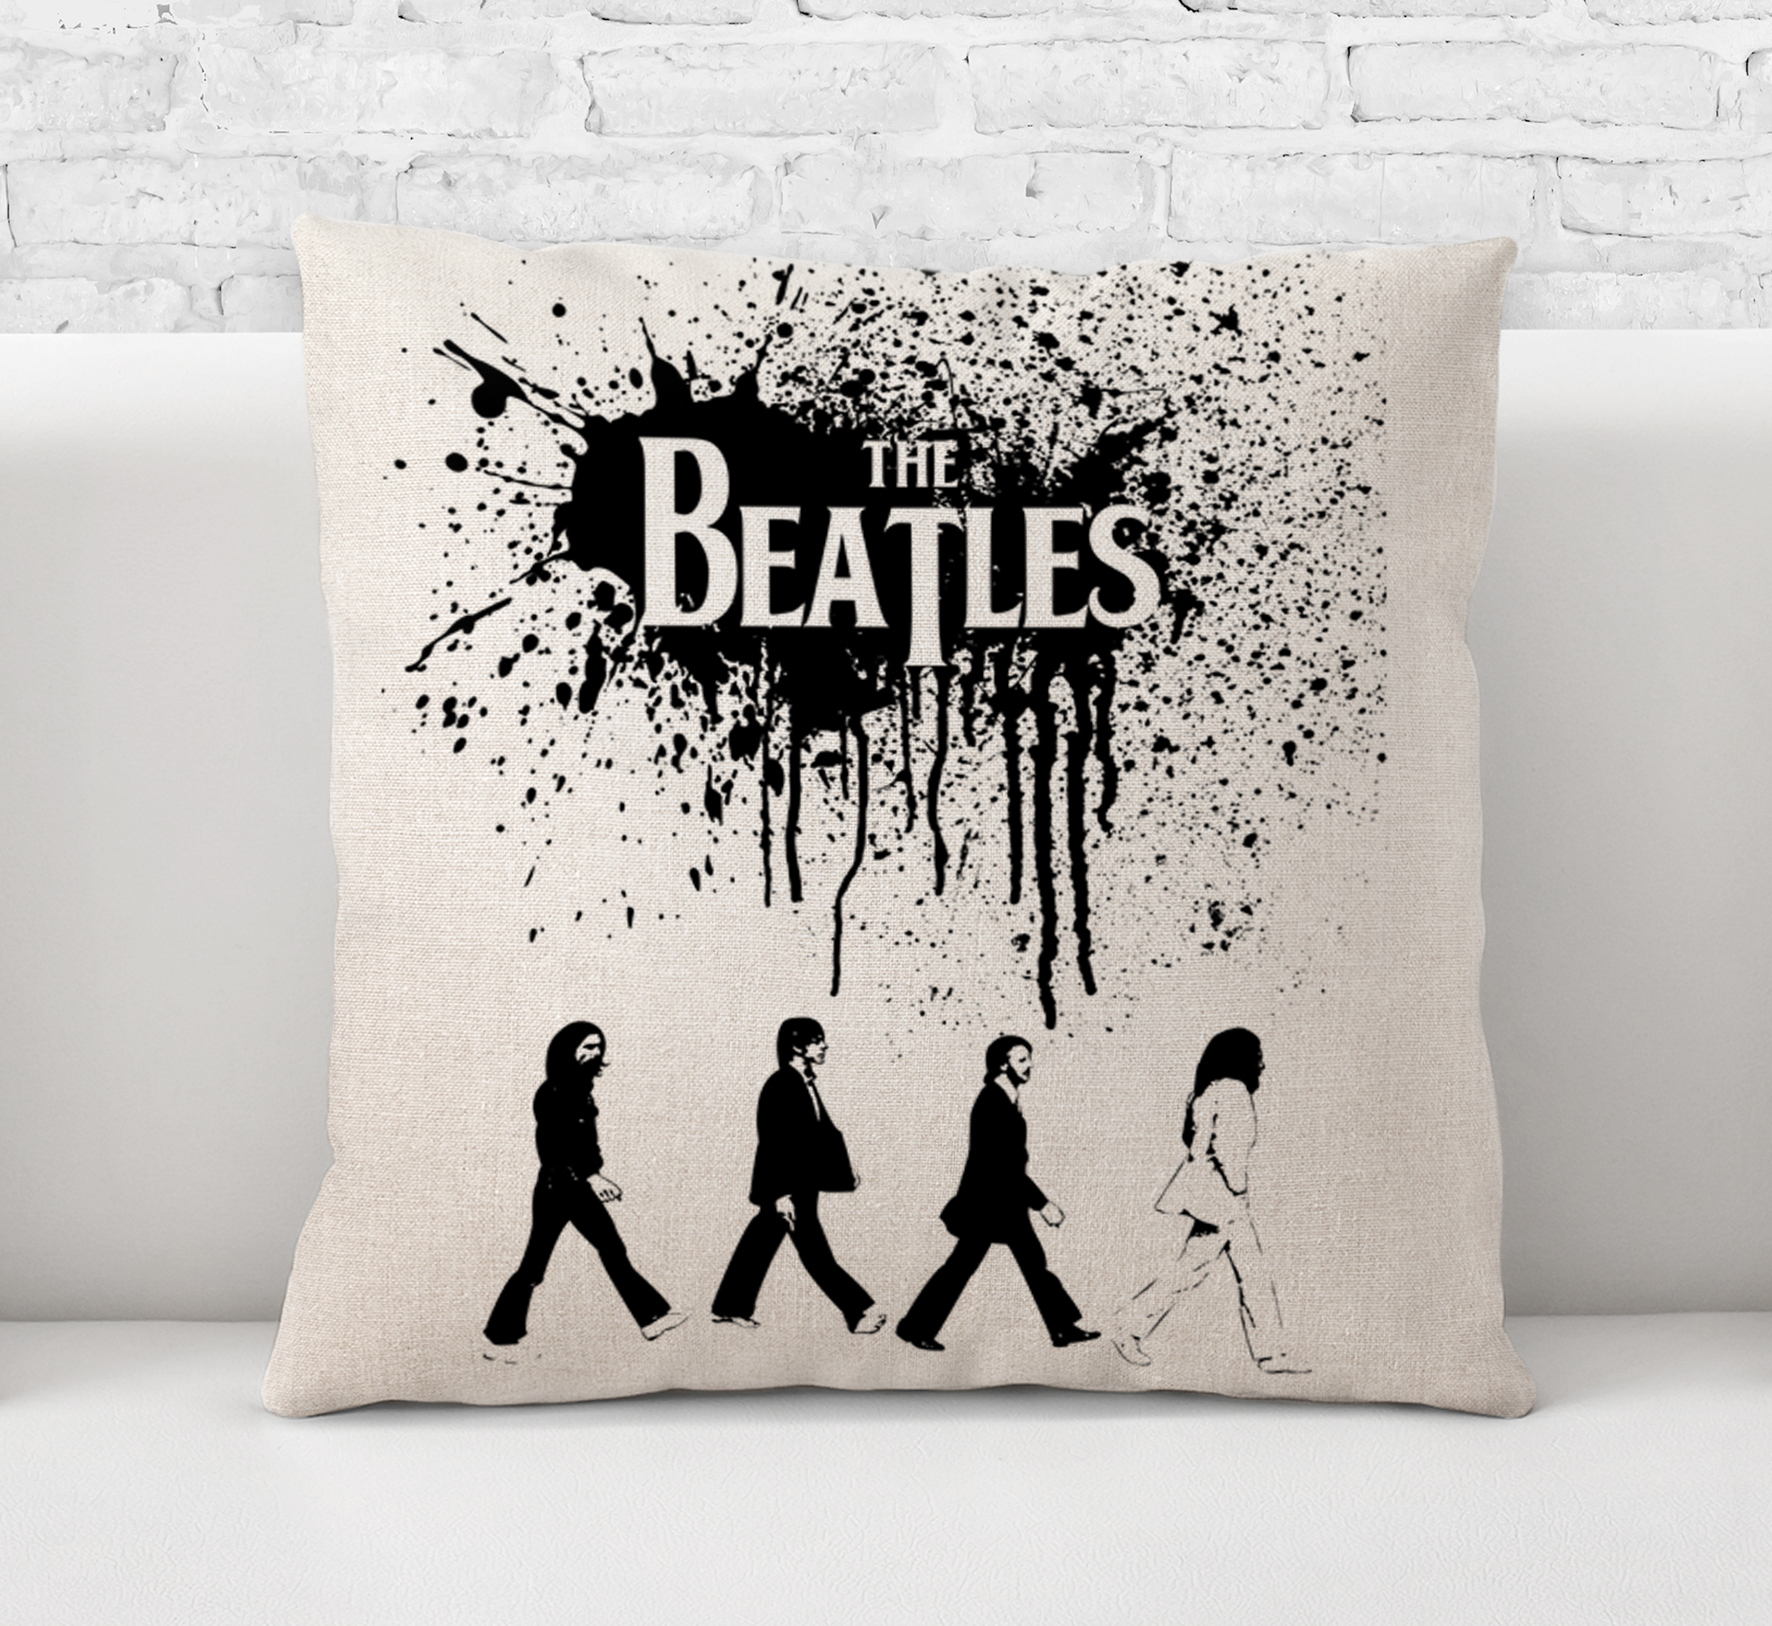 Throw Pillow CaseCushion Cover The Beatles Abbey RoadRock And RollPop MusicLegend60s Band Art 0129